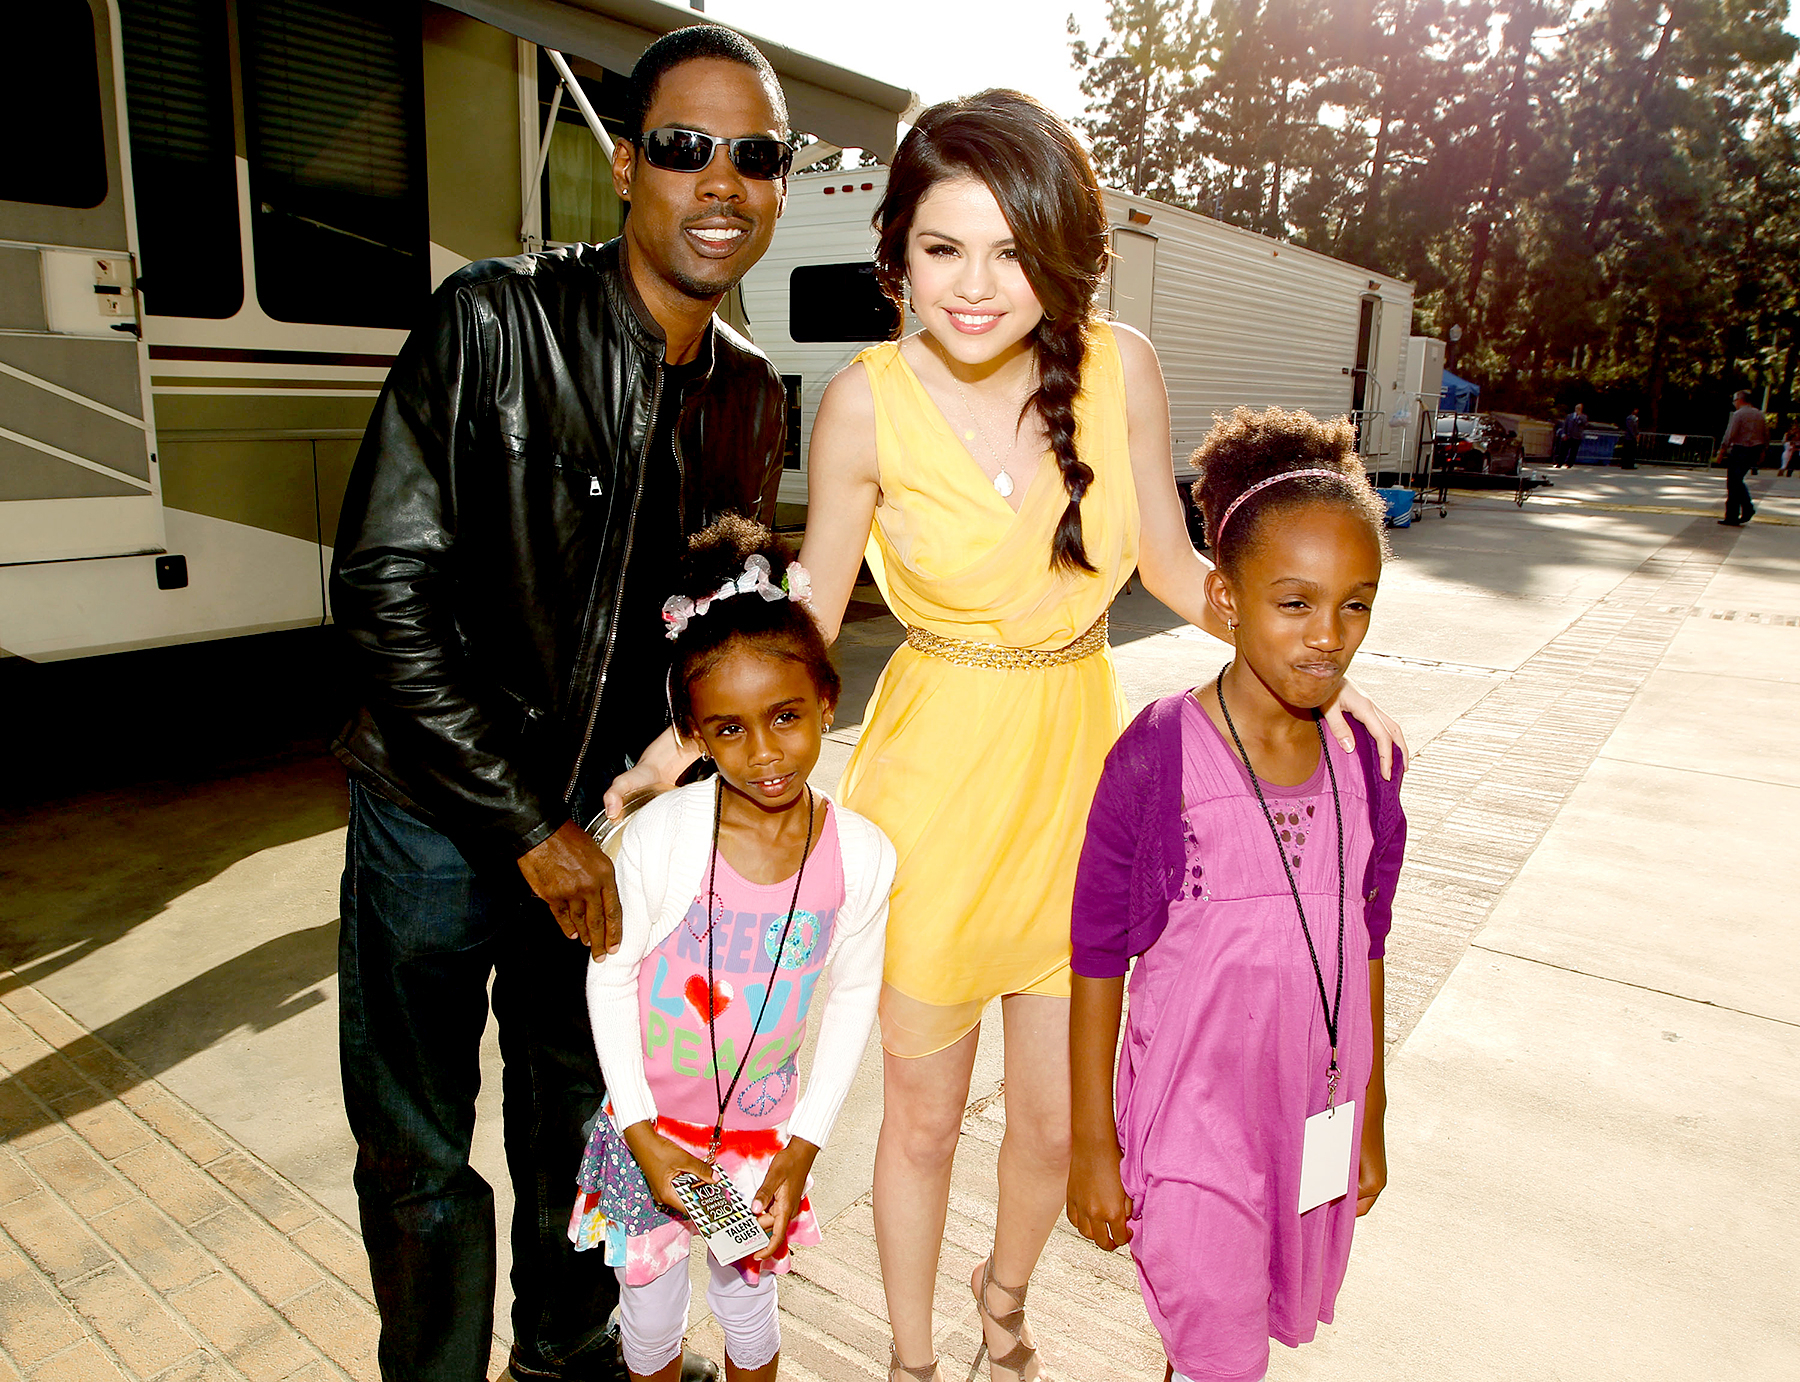 Chris Rock, Selena Gomez, Zahra Savannah Rock and Lola Simone Rock attend Nickelodeon's 23rd Annual Kids' Choice Awards on March 27, 2010 in Los Angeles, California.